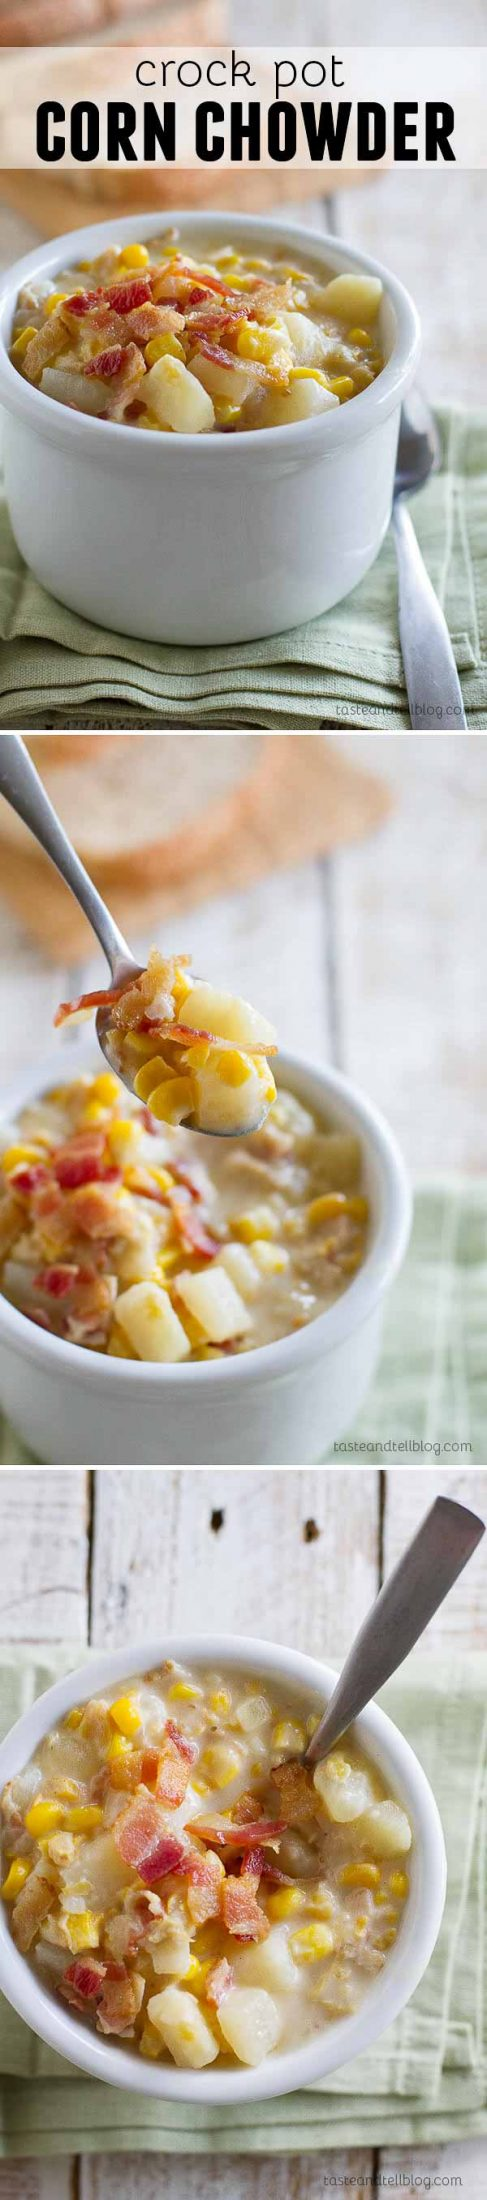 My mom's recipe for Crock Pot Corn Chowder - you can't go wrong when it's mom's recipe!